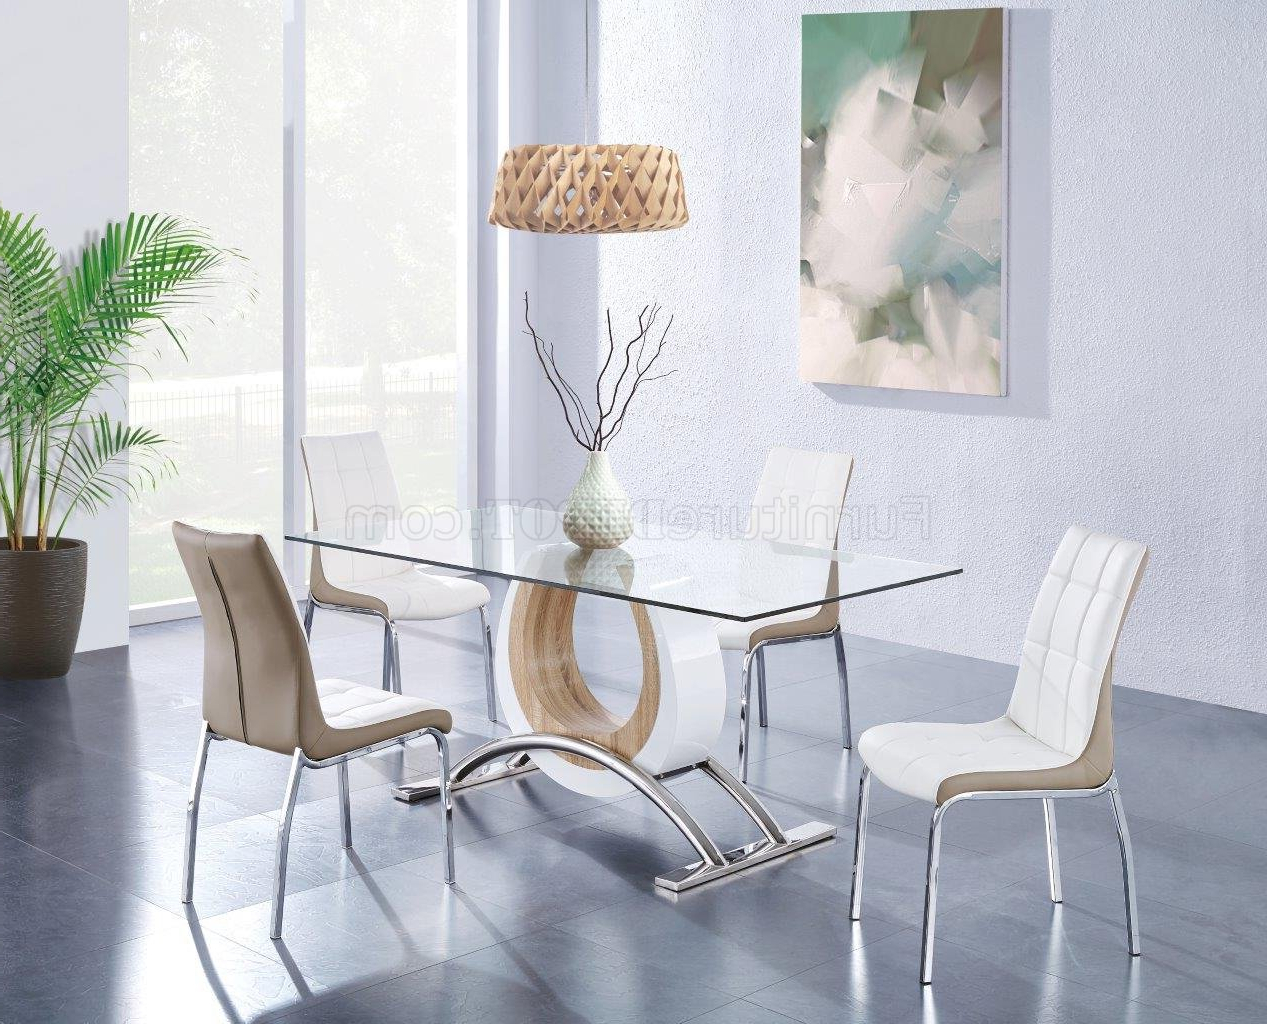 D4202Dt Dining Table White & Light Oakglobal W/glass Top Intended For Togal Contemporary White/light Oak Dining Buffets (View 1 of 20)